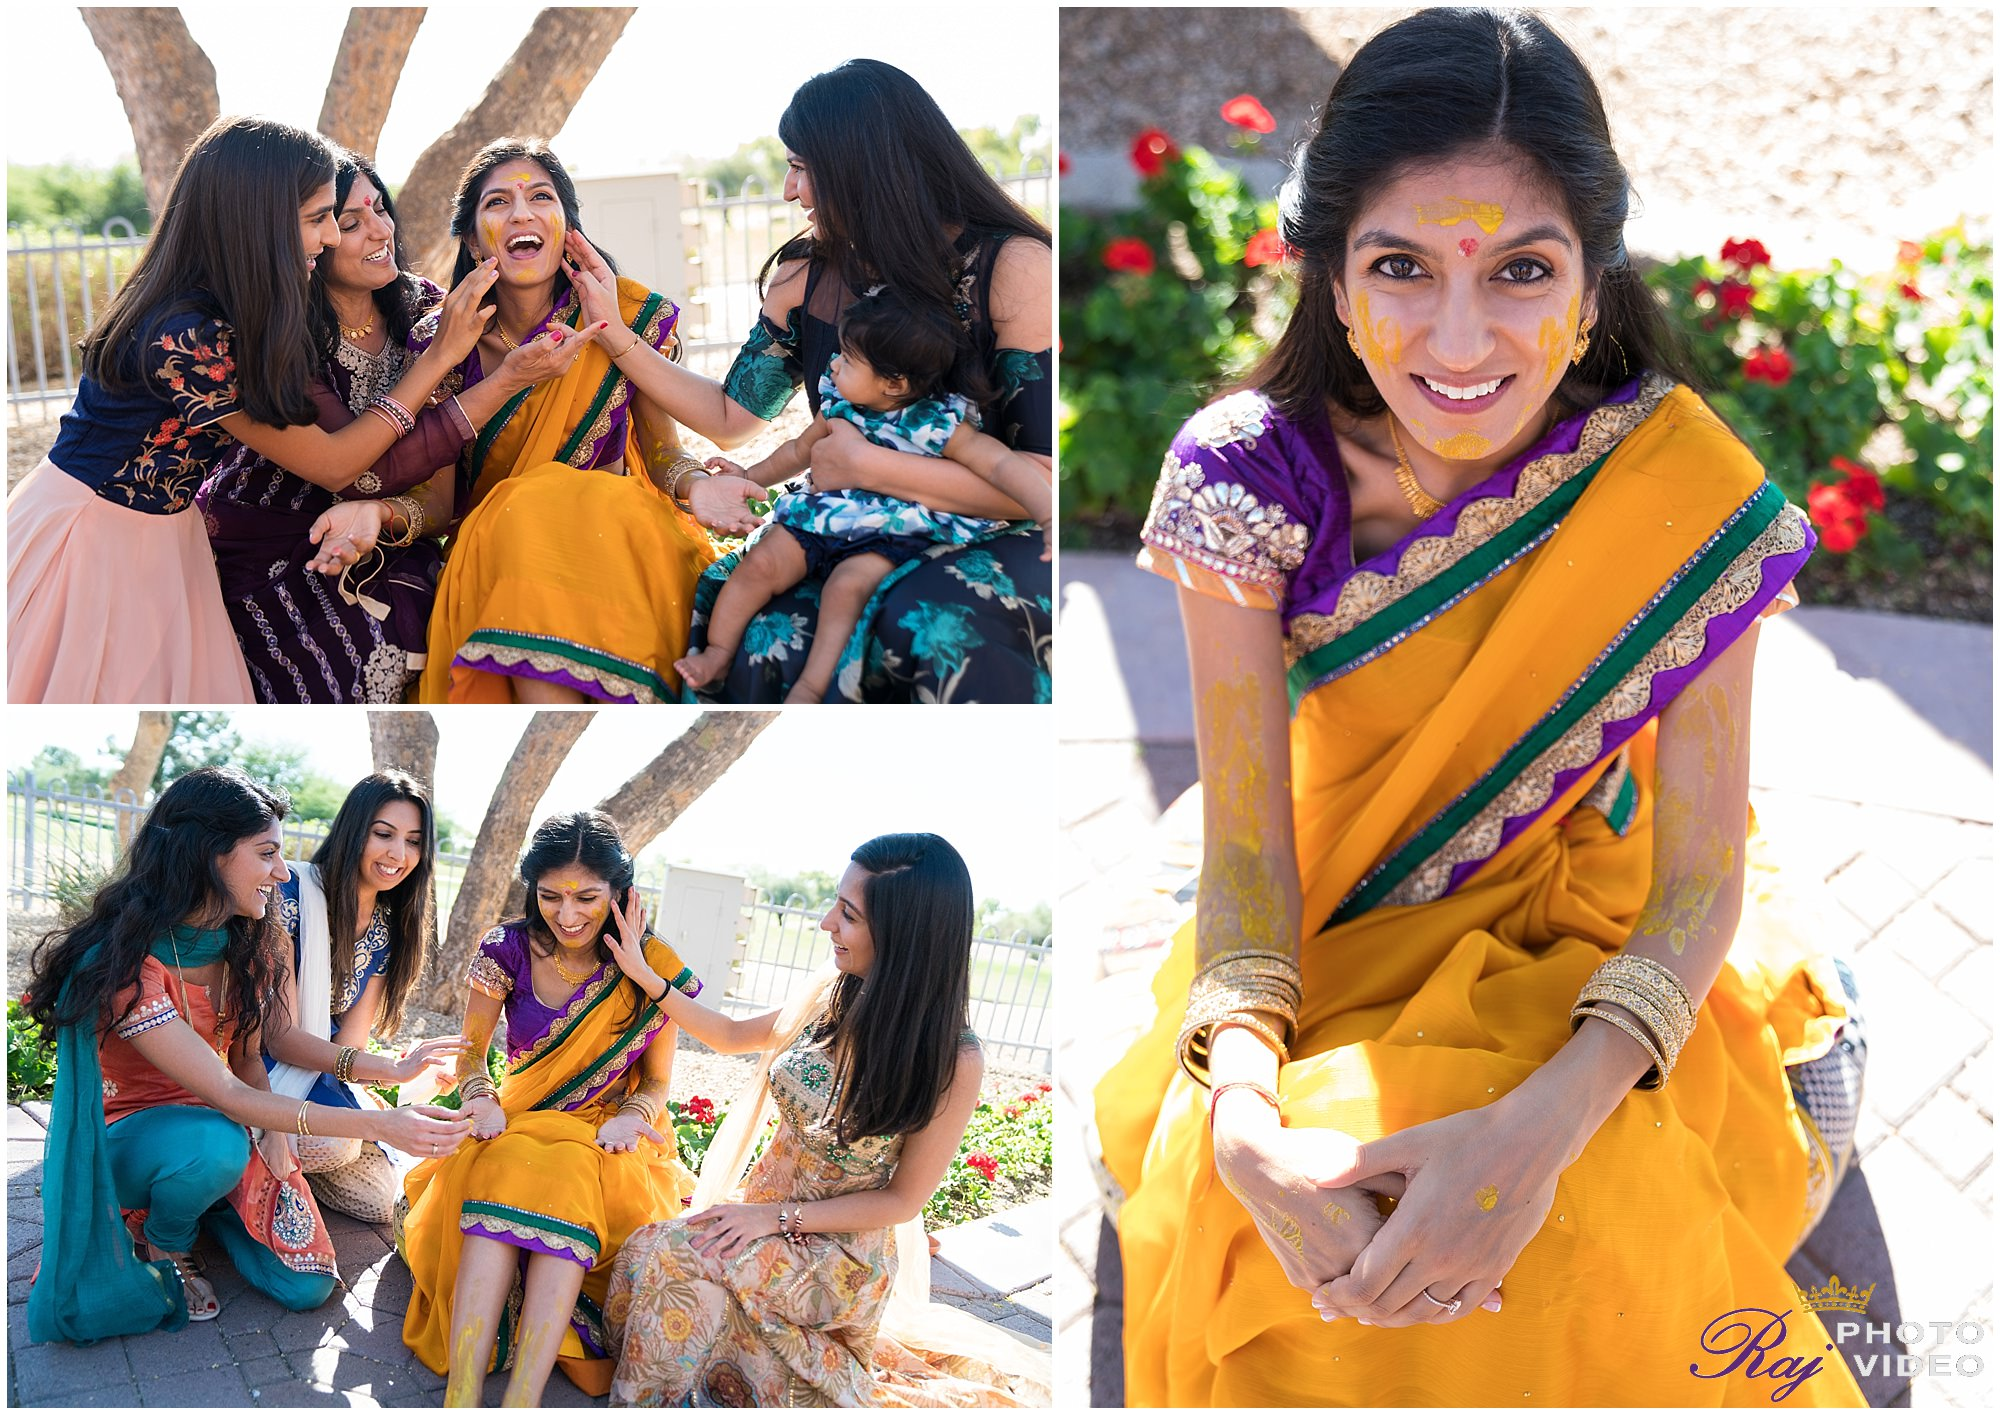 Scottsdale_Marriott_at_McDowell_Mountains_Arizona_Indian_Wedding_Sapna_Shyam-8.jpg